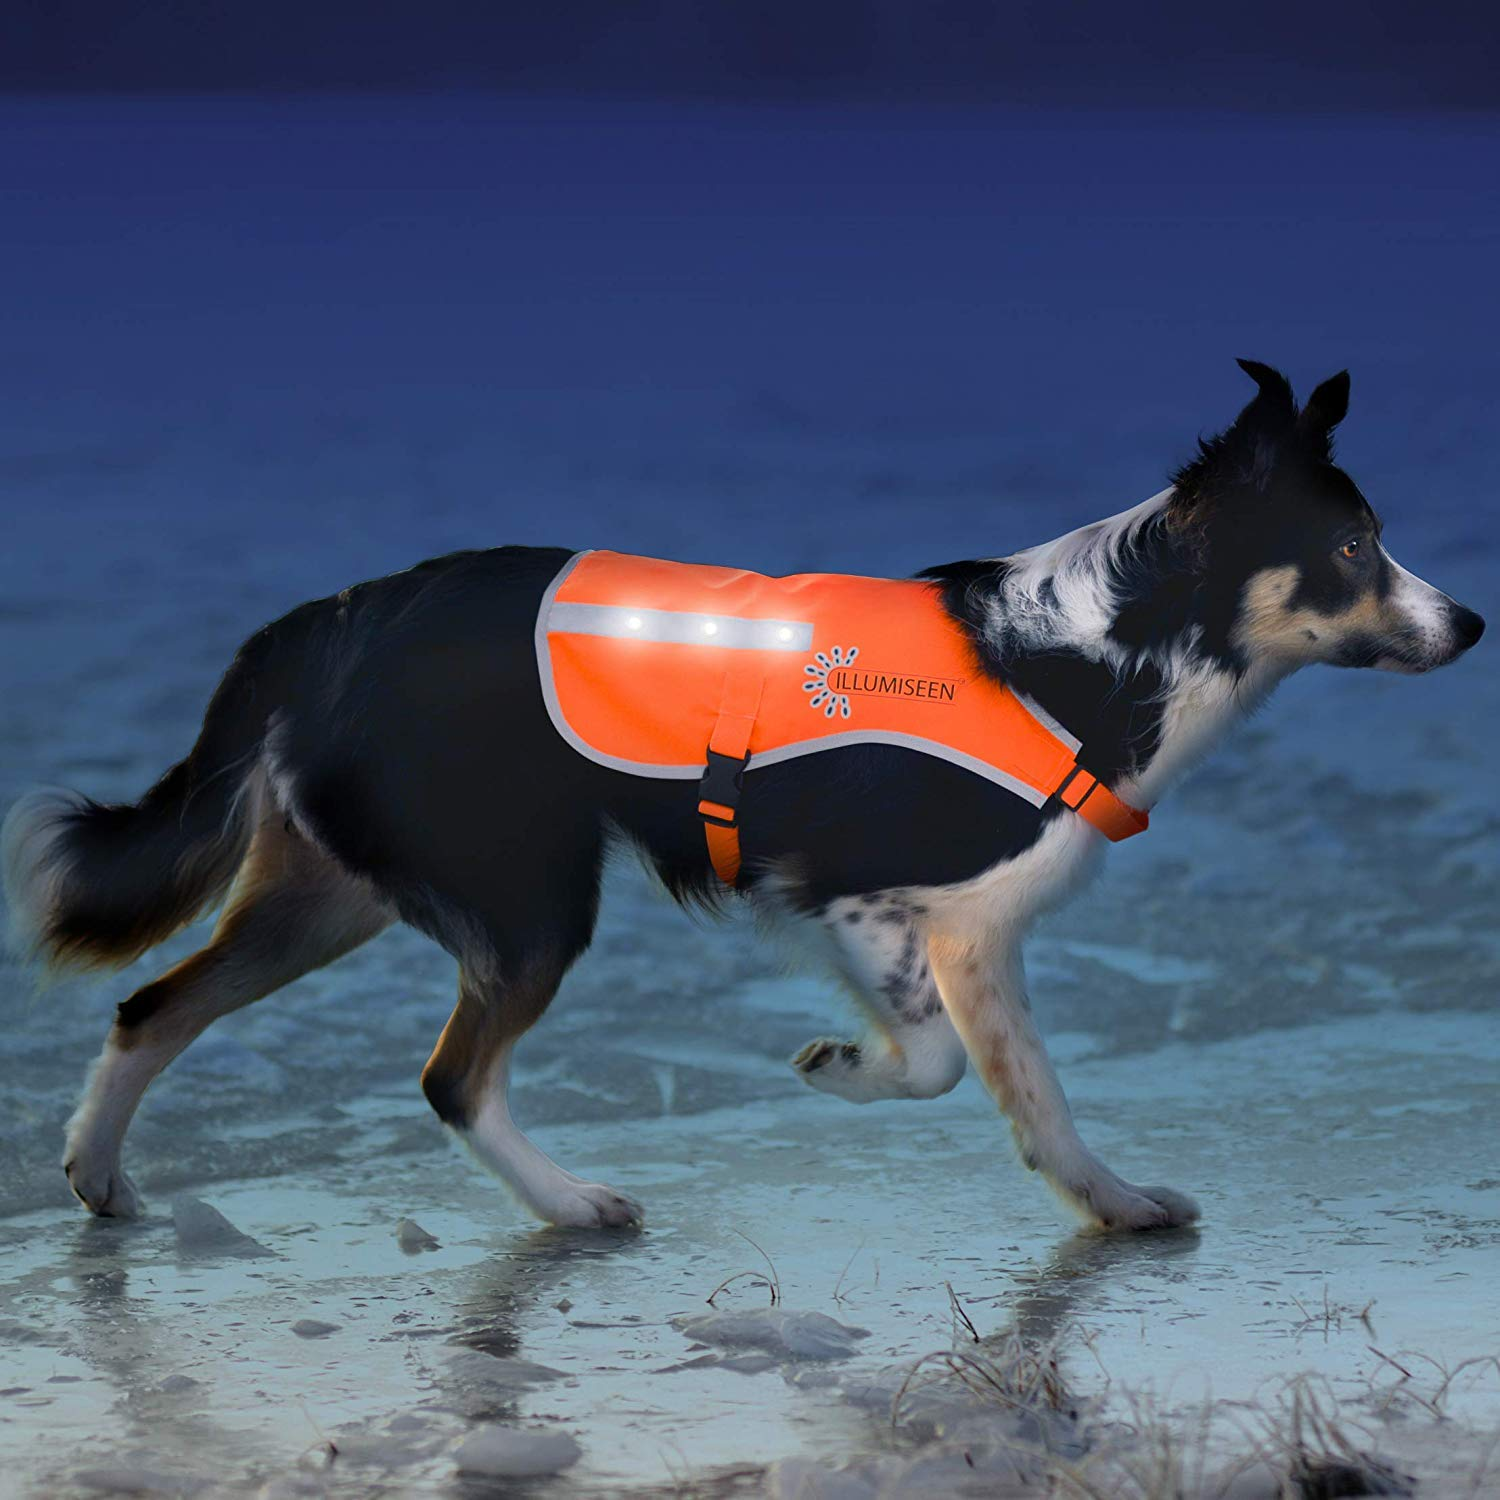 Illumiseen LED Dog Vest | Orange Safety Jacket with Reflective Strips & USB Rechargeable LED Lights | Increase Dog's Visibility When Walking, Running, Training Outdoors (Medium, Orange) by Illumiseen